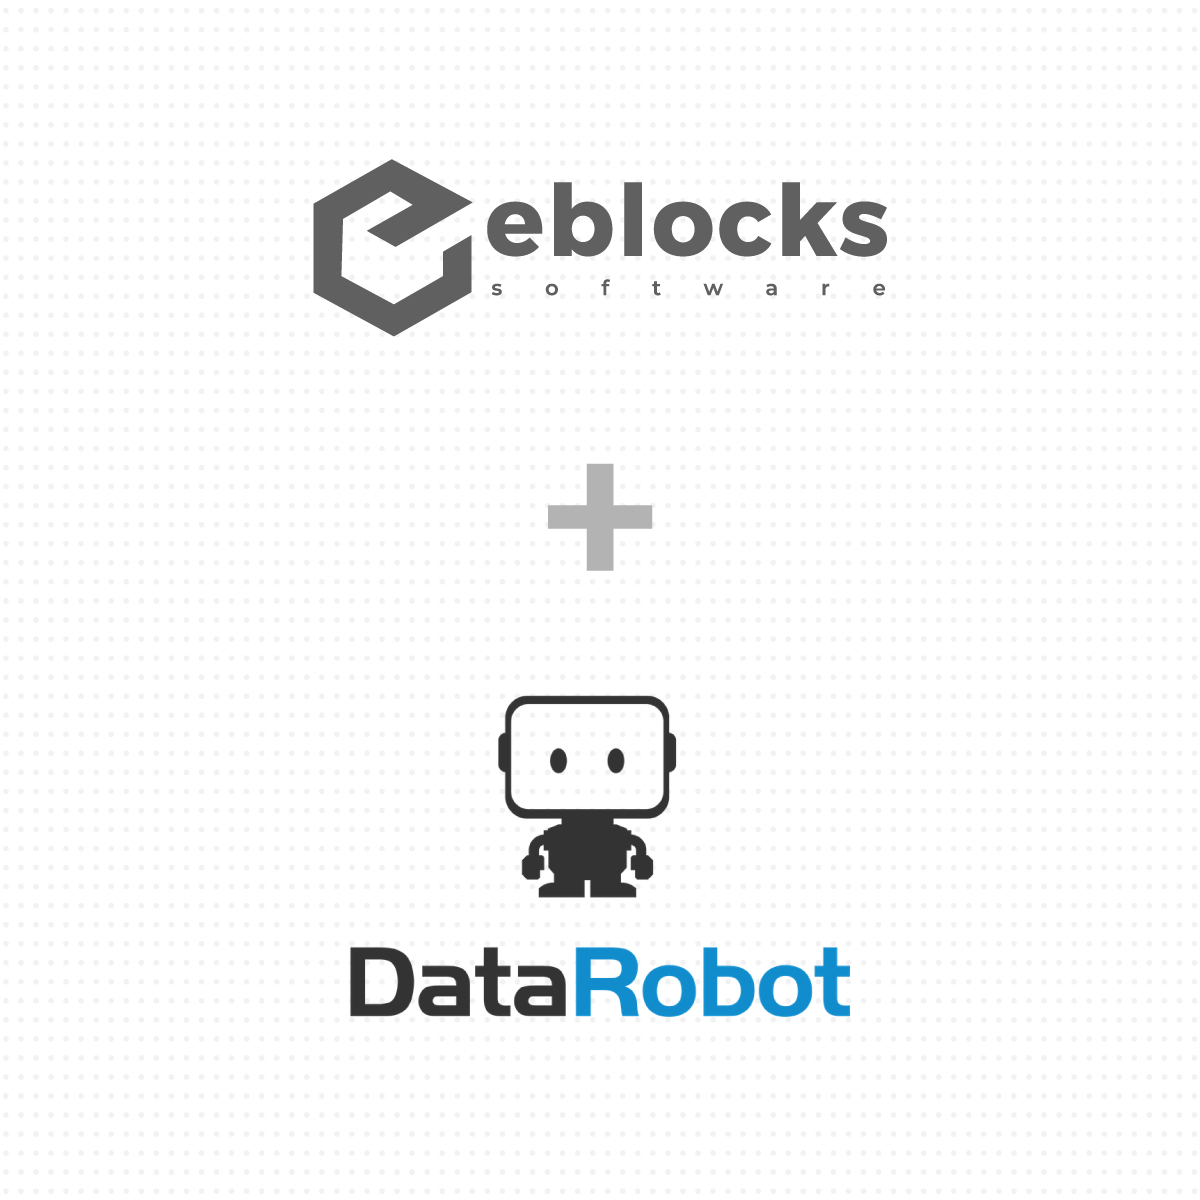 eblocks and datarobot